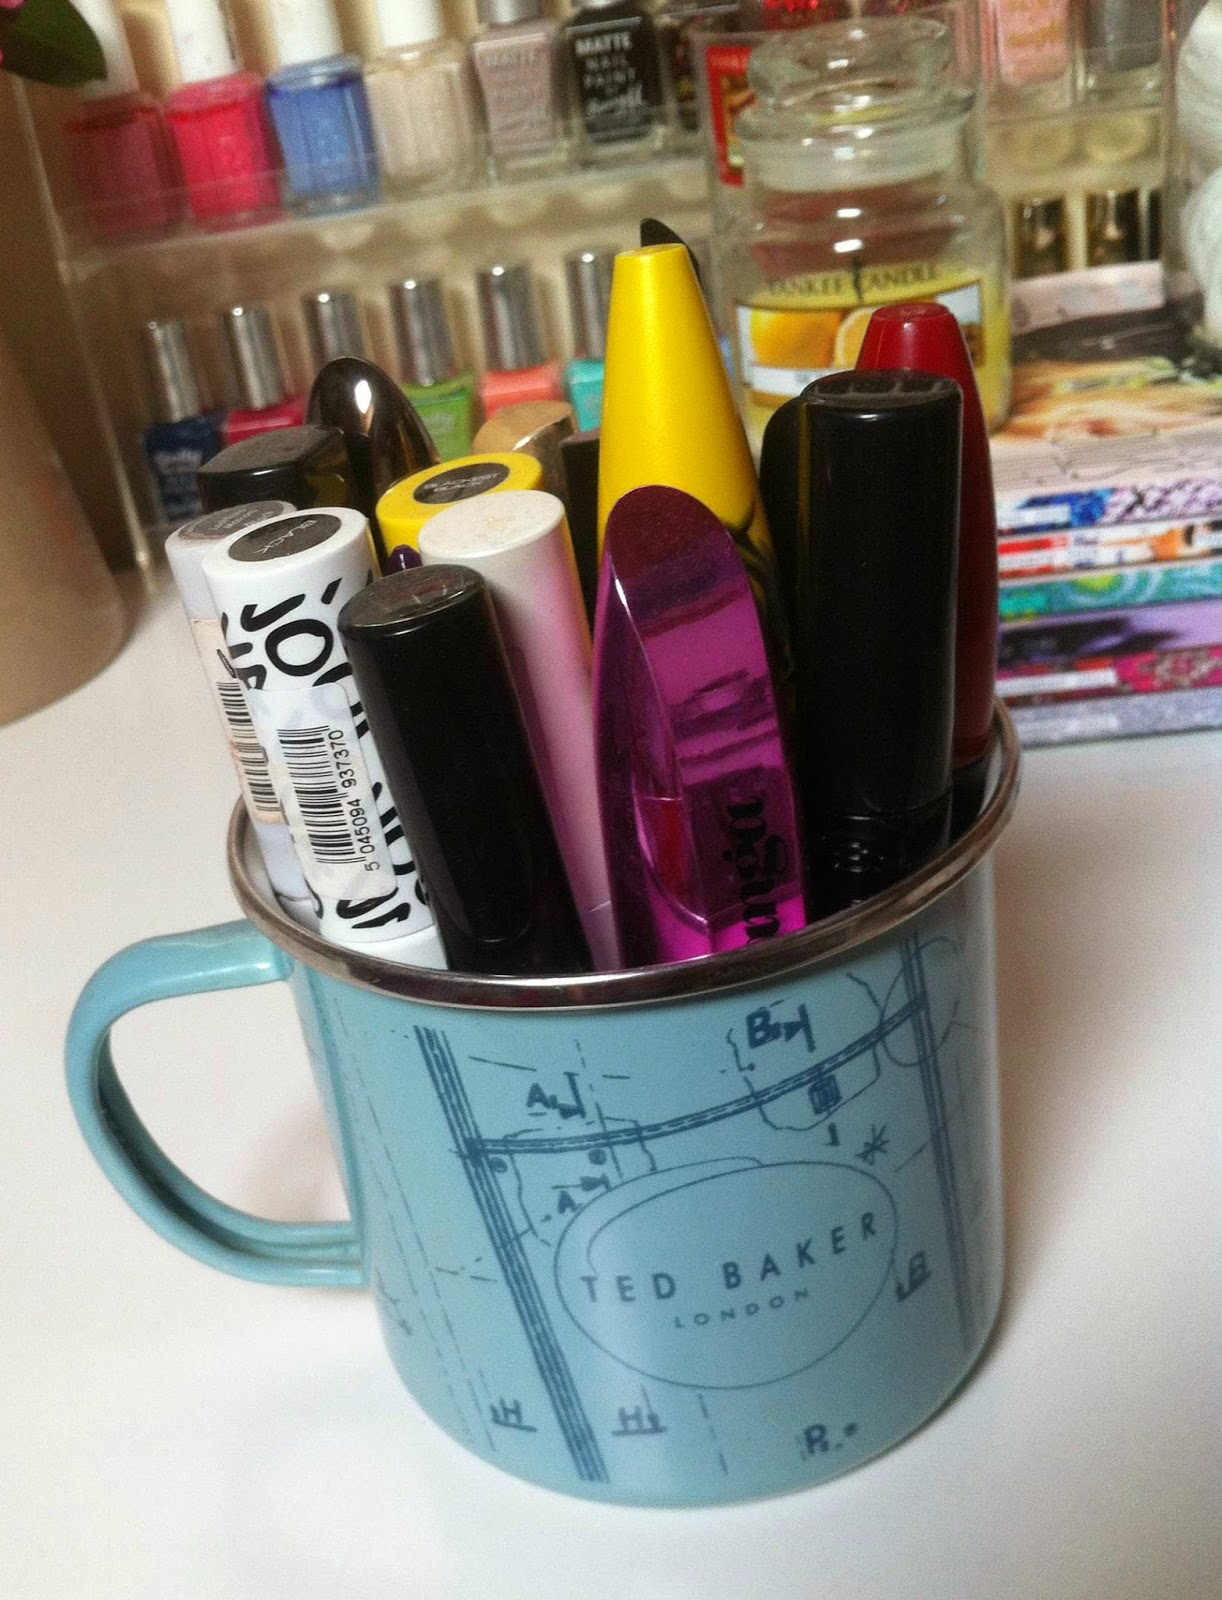 My mascaras live in a Ted Baker tin mug that Dan didn't appreciate for a Christmas present of a relative last year so me and my mascaras did.